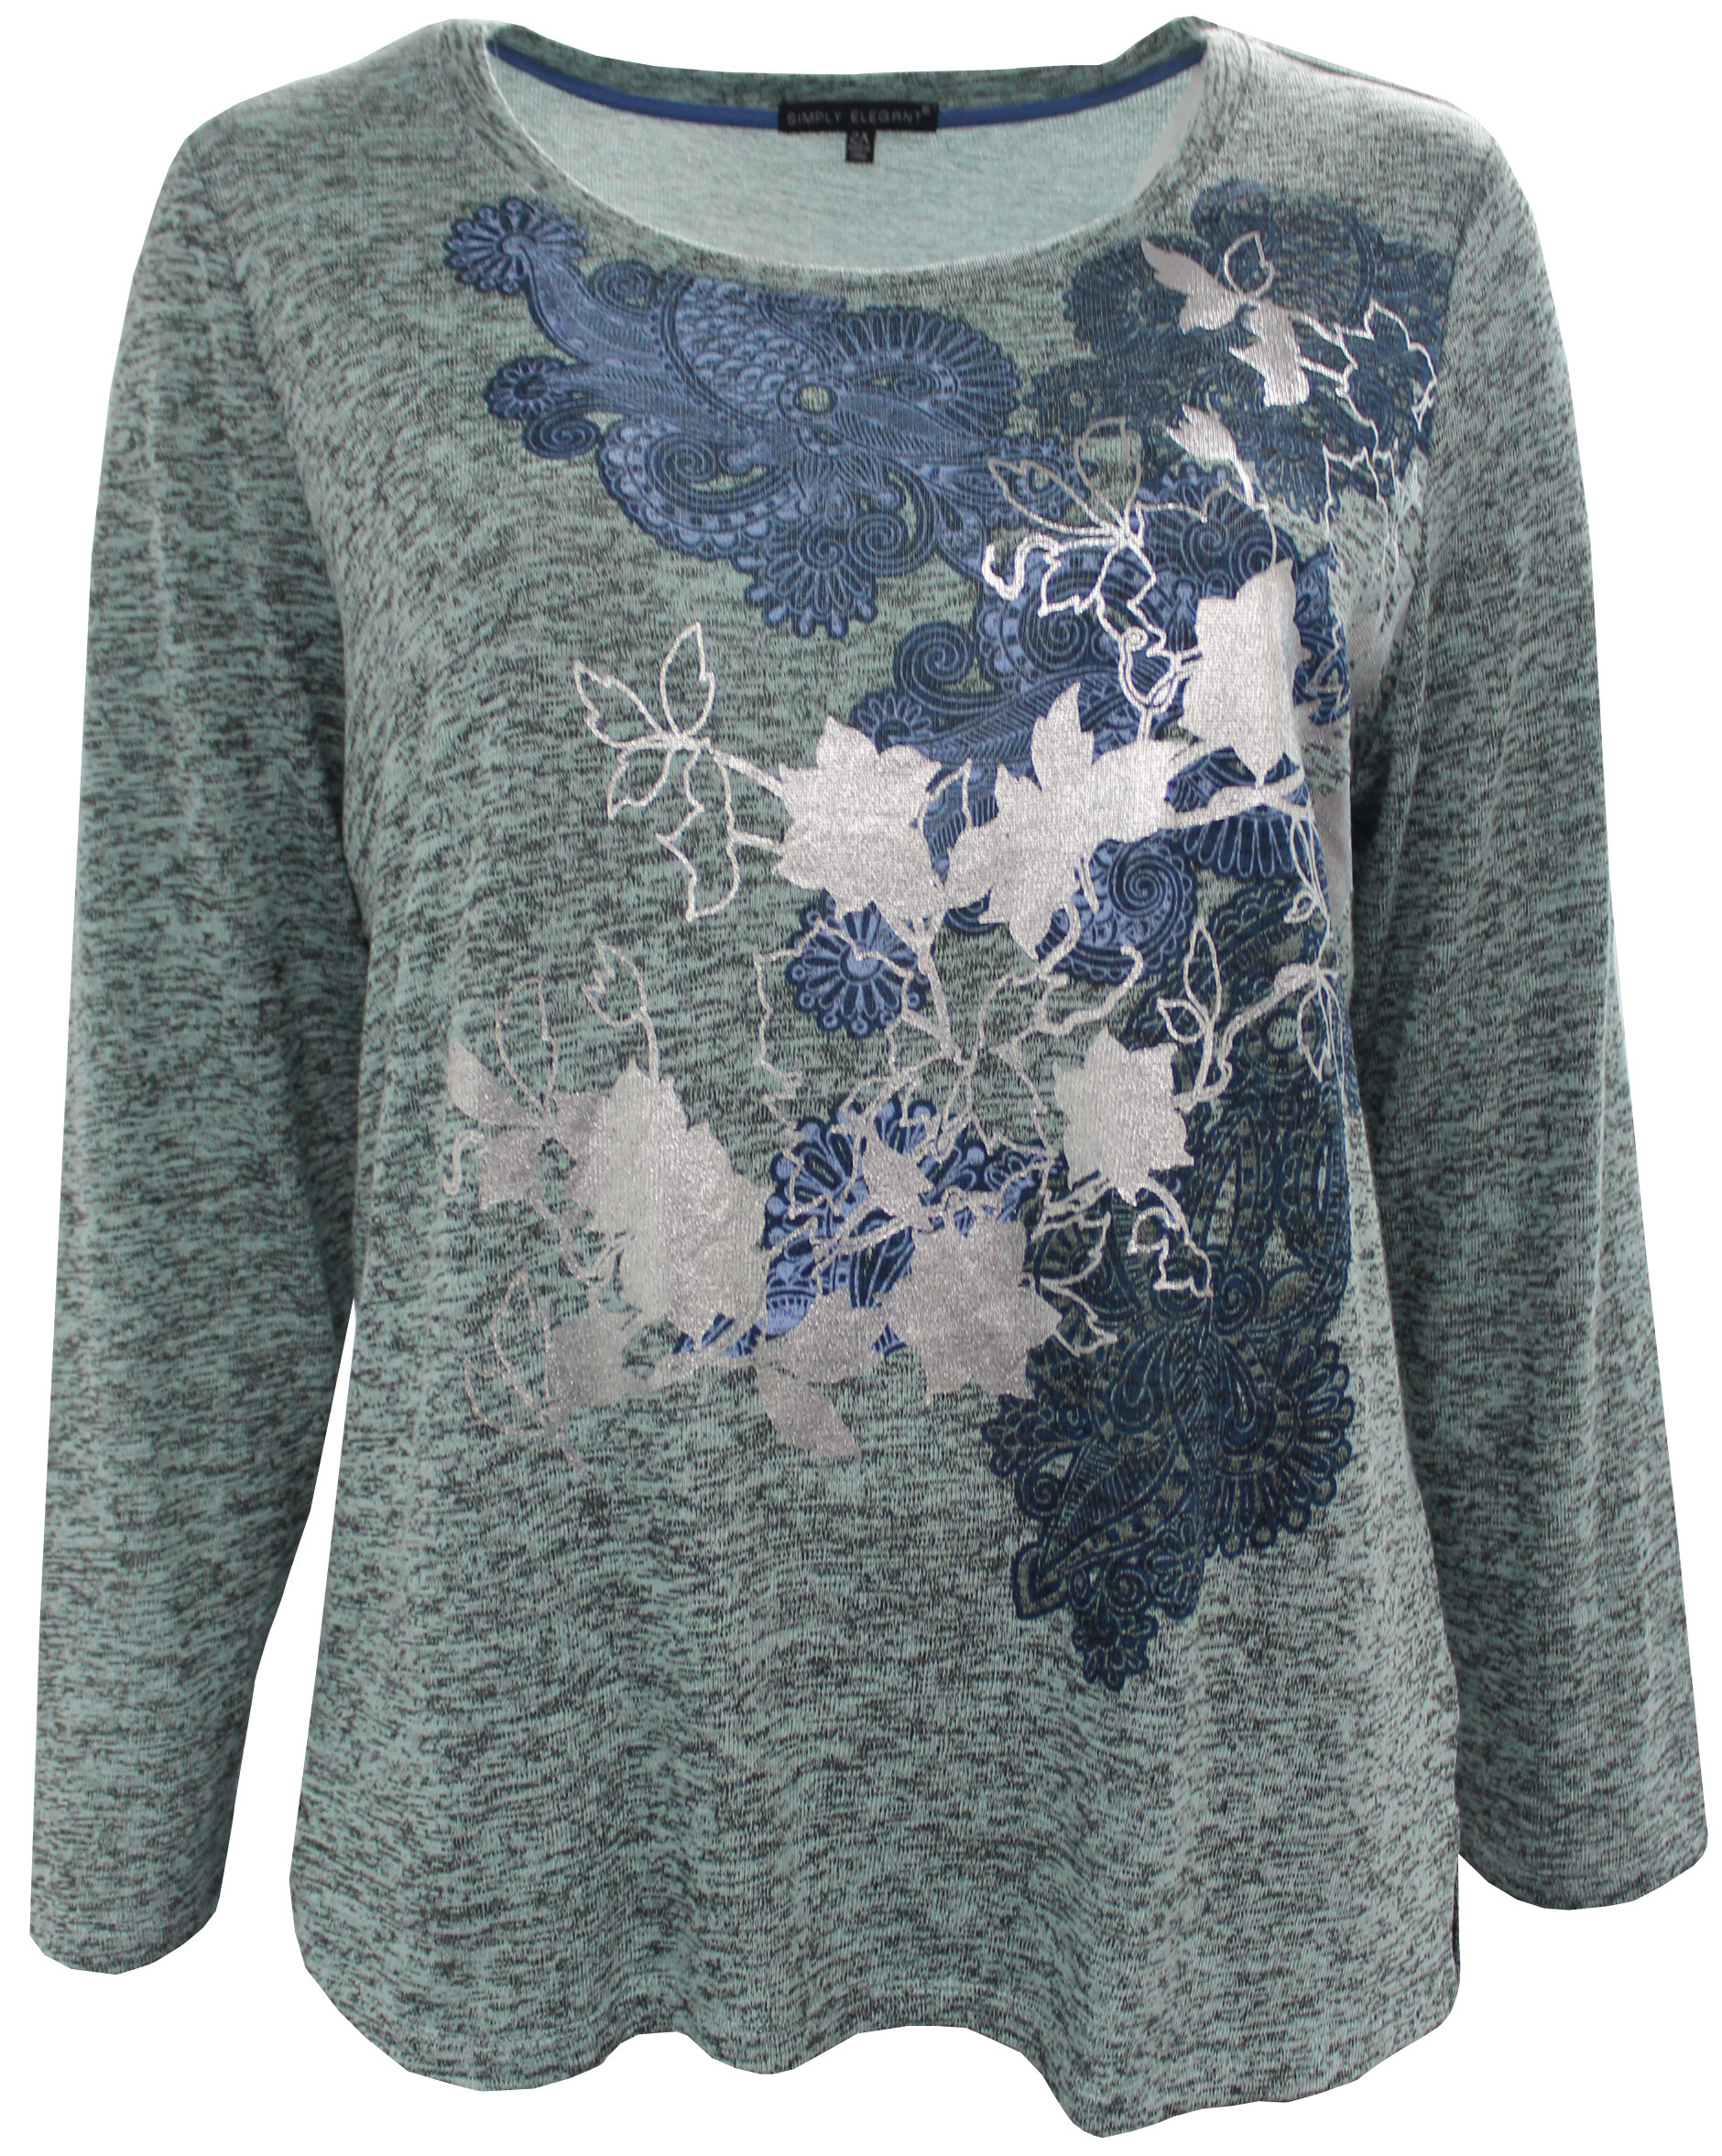 Women's Plus-Size Long Sleeve Floral Foil Design Knit Top Blouse Sweater Aqua 1X G16.047L